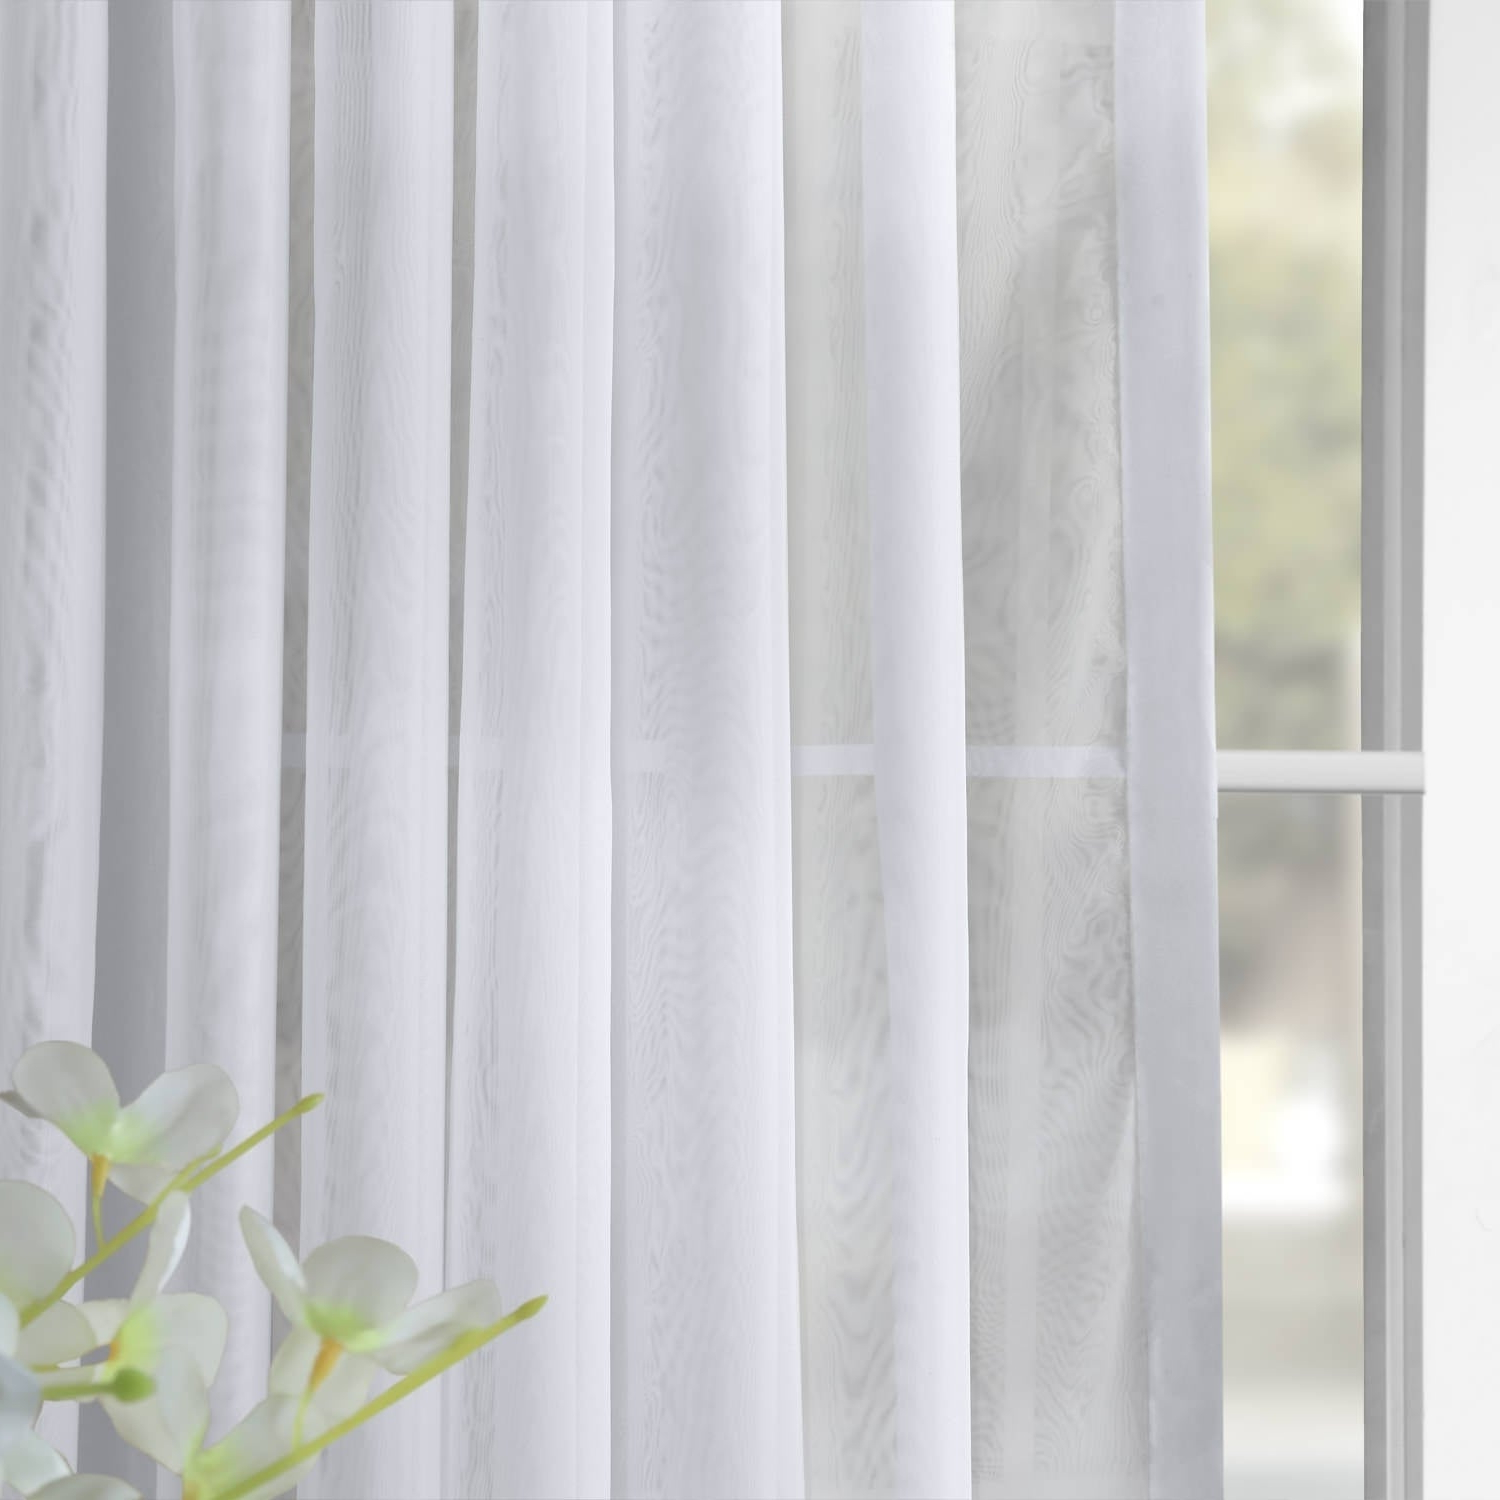 Double Layer Sheer White Single Curtain Panels Pertaining To Famous Exclusive Fabrics Double Layer Sheer White Single Curtain Panel (View 7 of 20)